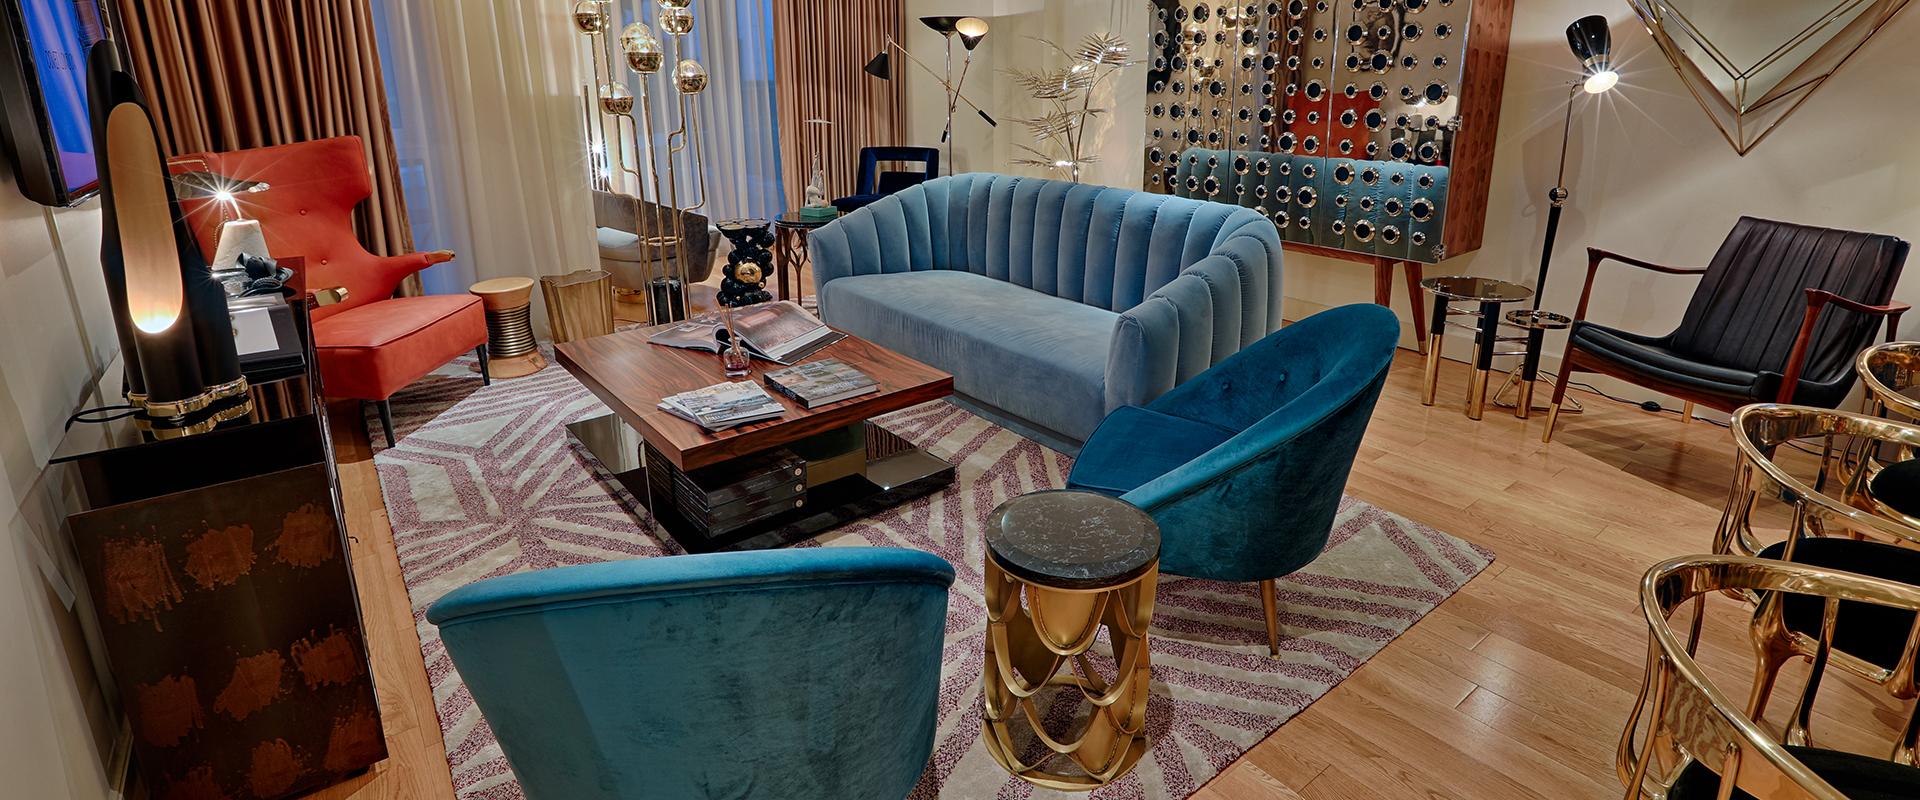 Covet London Showroom, showroom, virtual tour, brabbu , maison valentina covet london showroom Discover Covet London Showroom From Your Home – Virtual Tour covet london